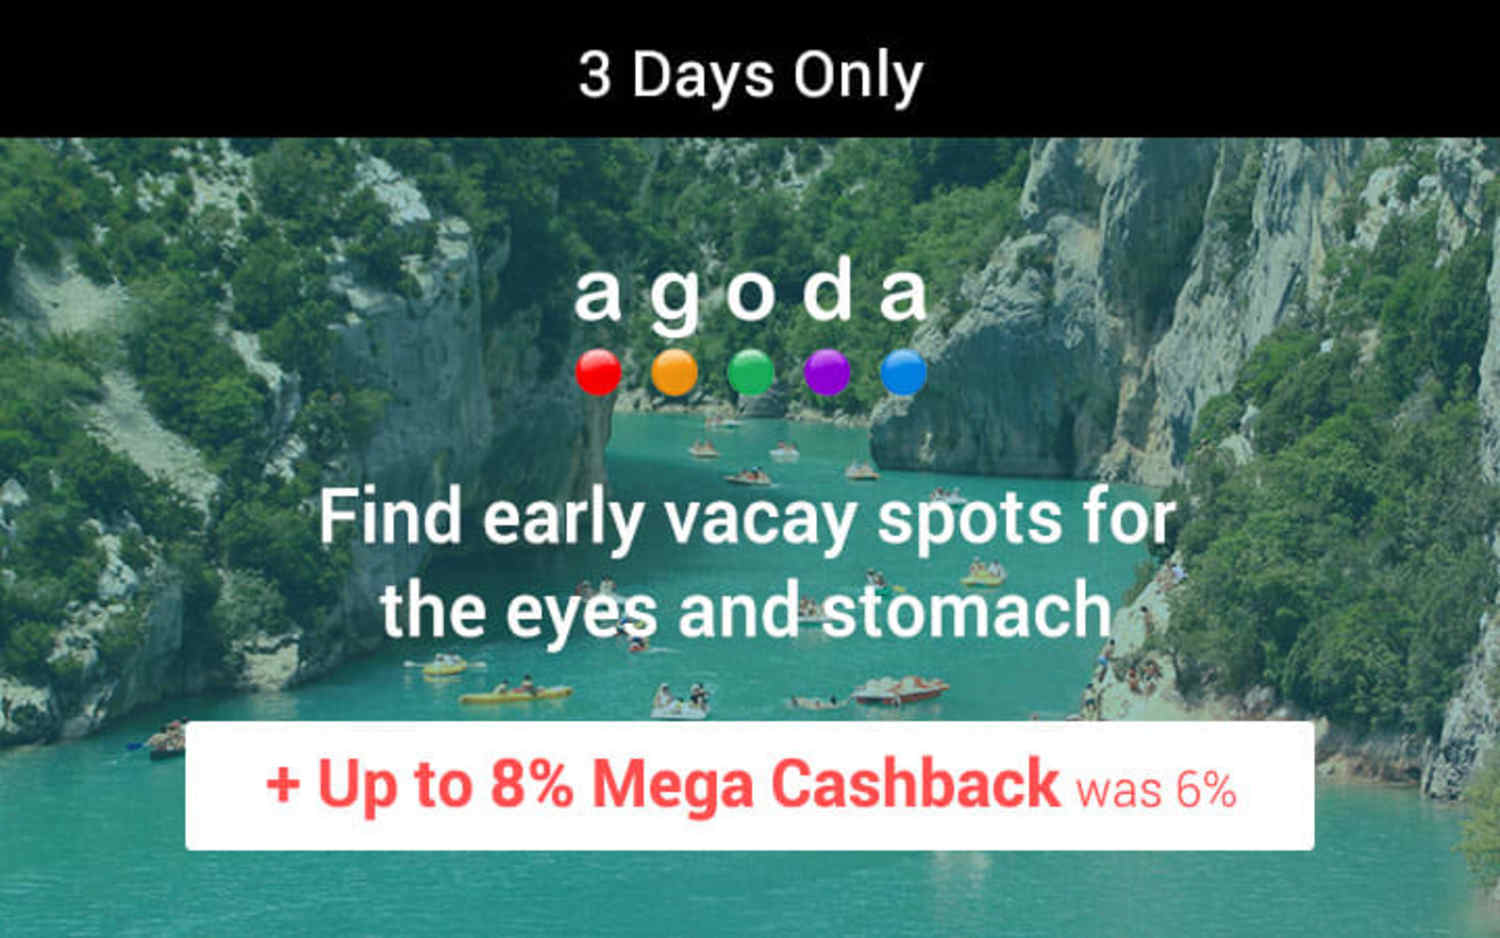 15 ~ 17 Feb Agoda Find early vacay spots for the eyes and stomach + Up to 8% Mega Cashback (was 6%)